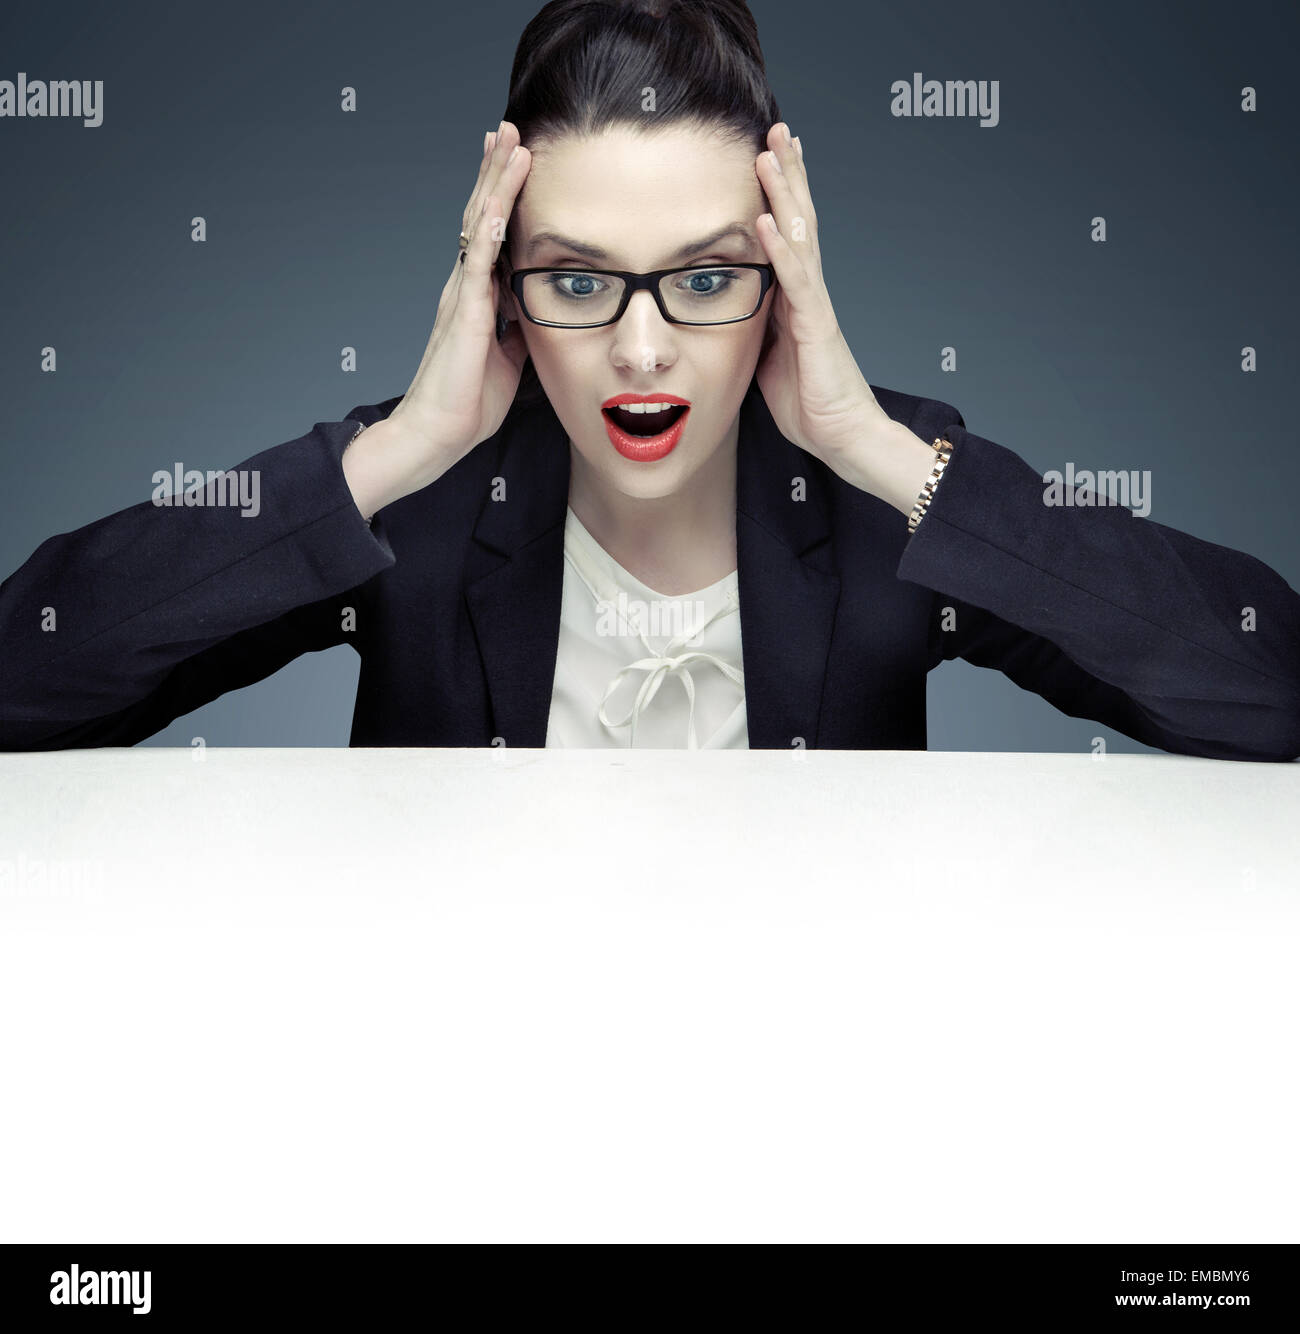 Totally surprised businesswoman staring at sth - Stock Image